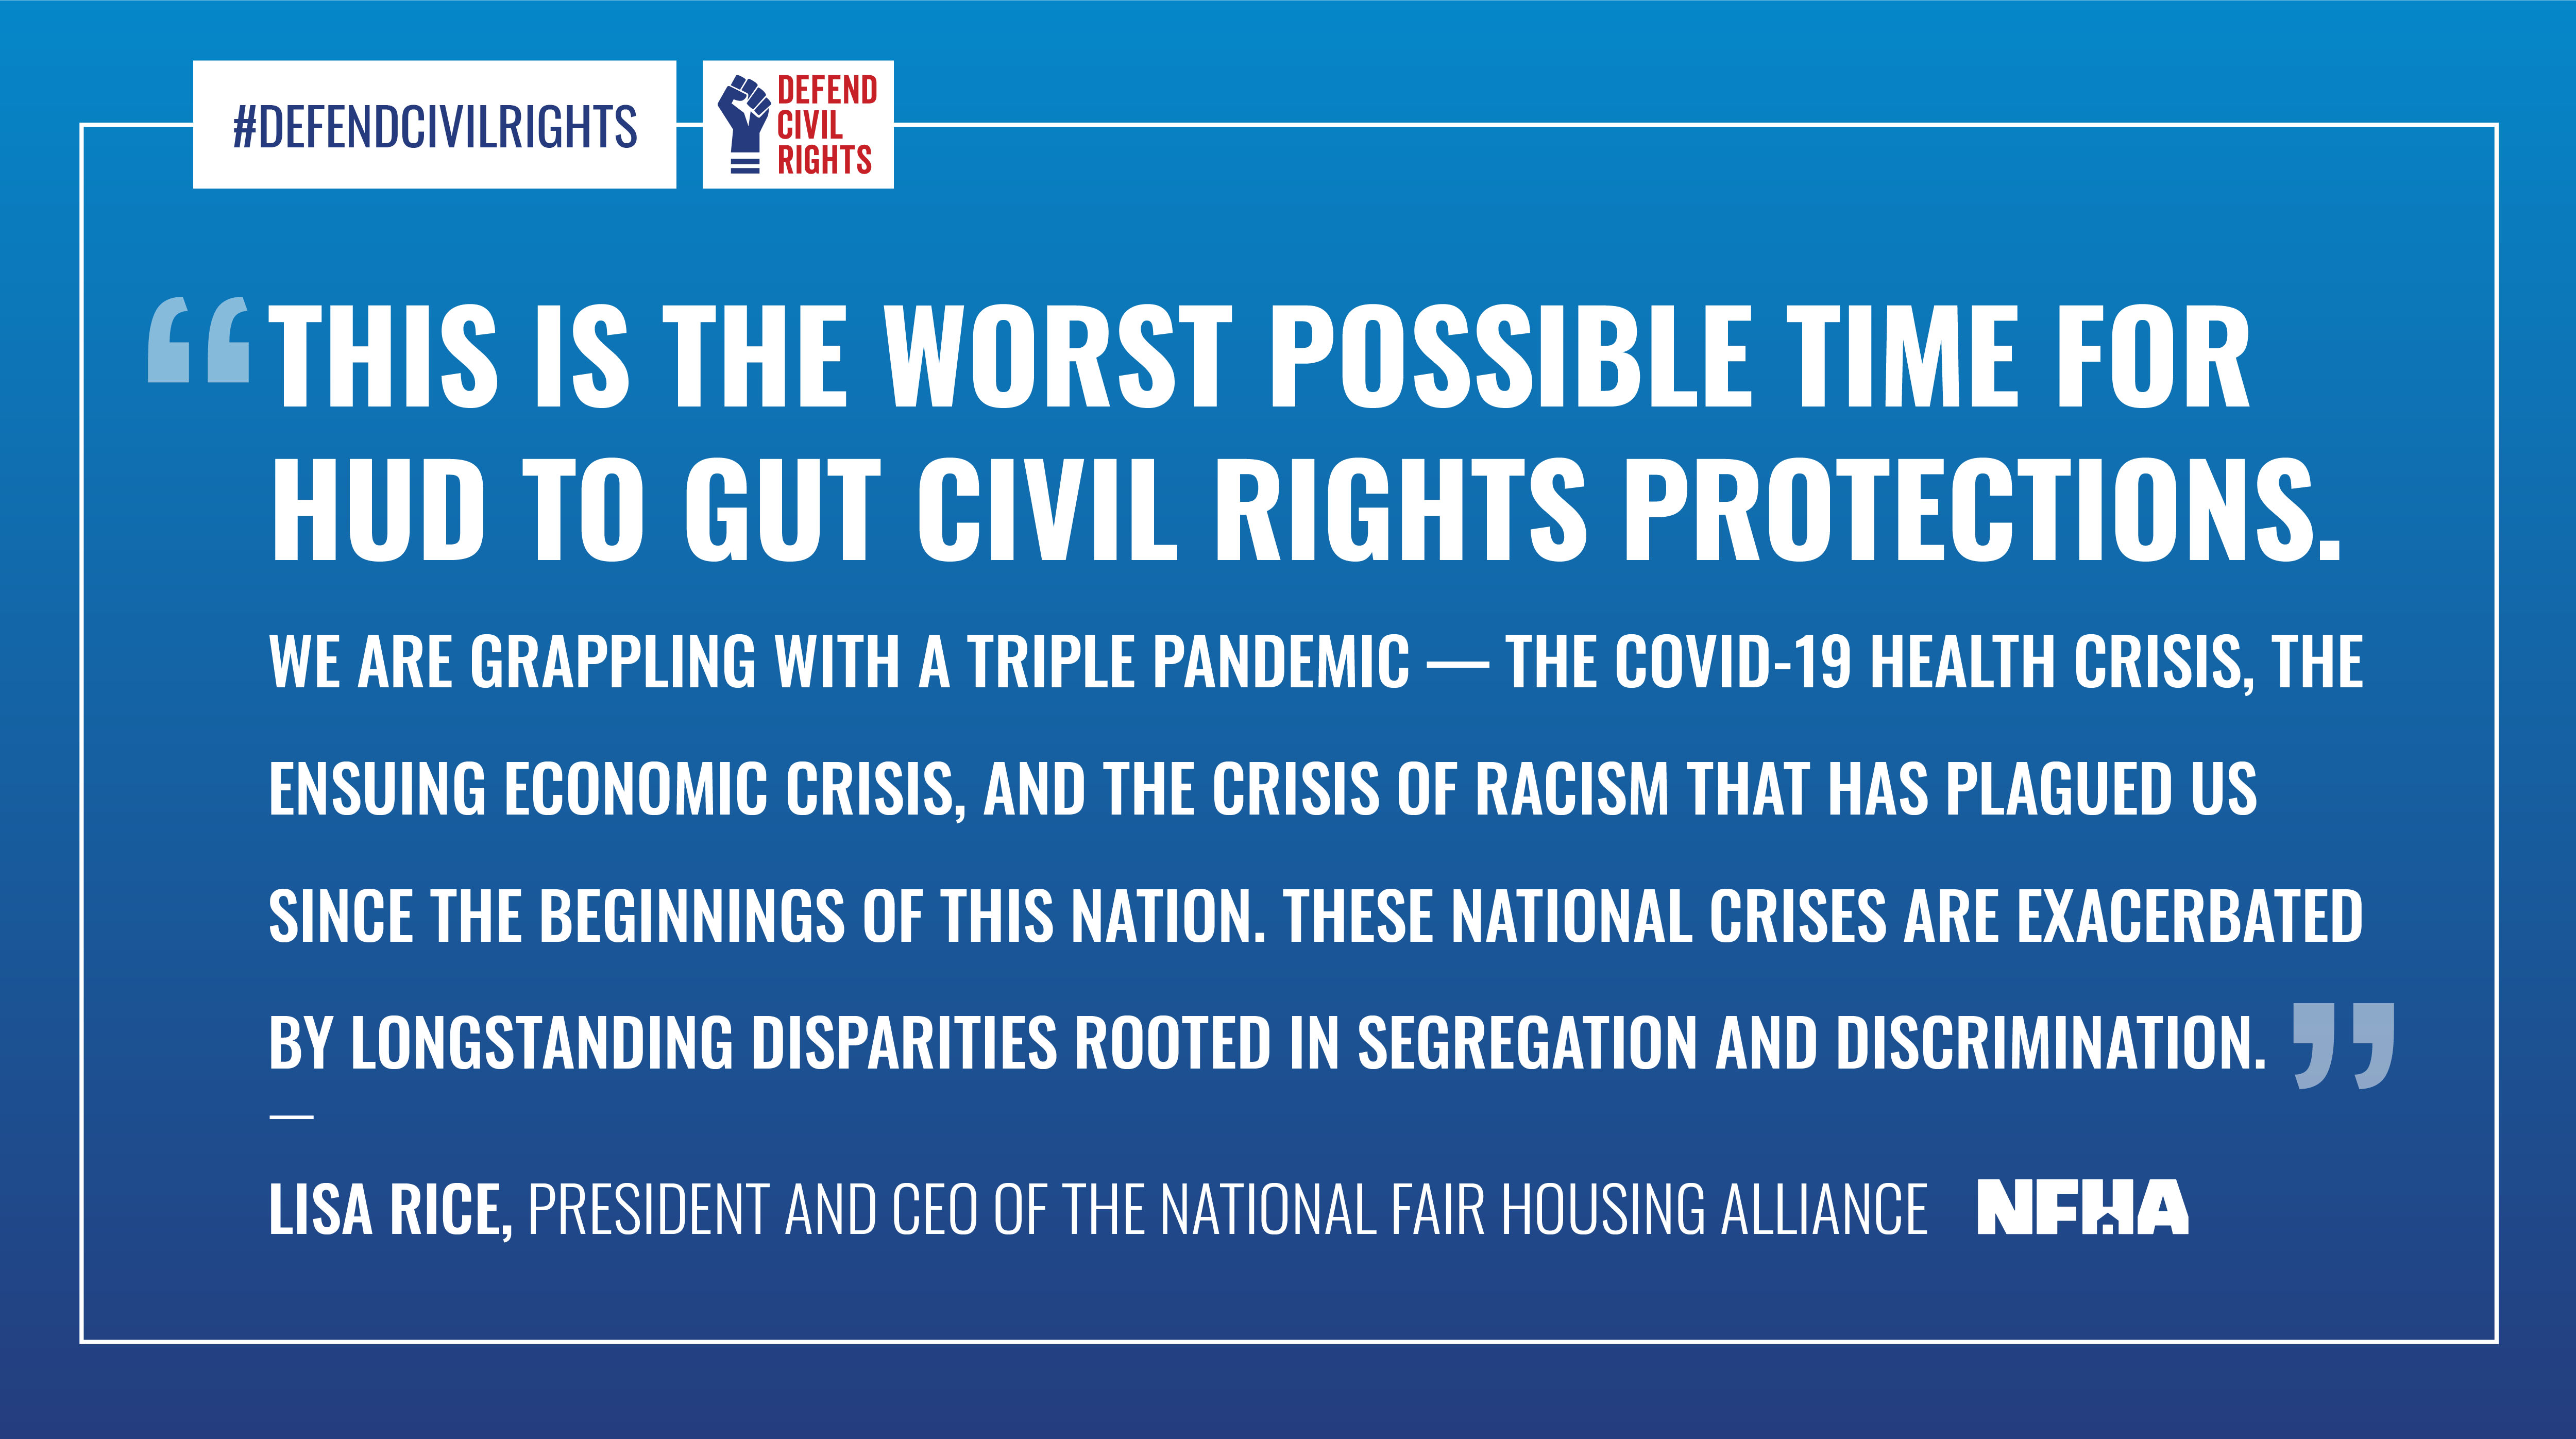 This is the worst possible time for HUD to gut civil rights protections.